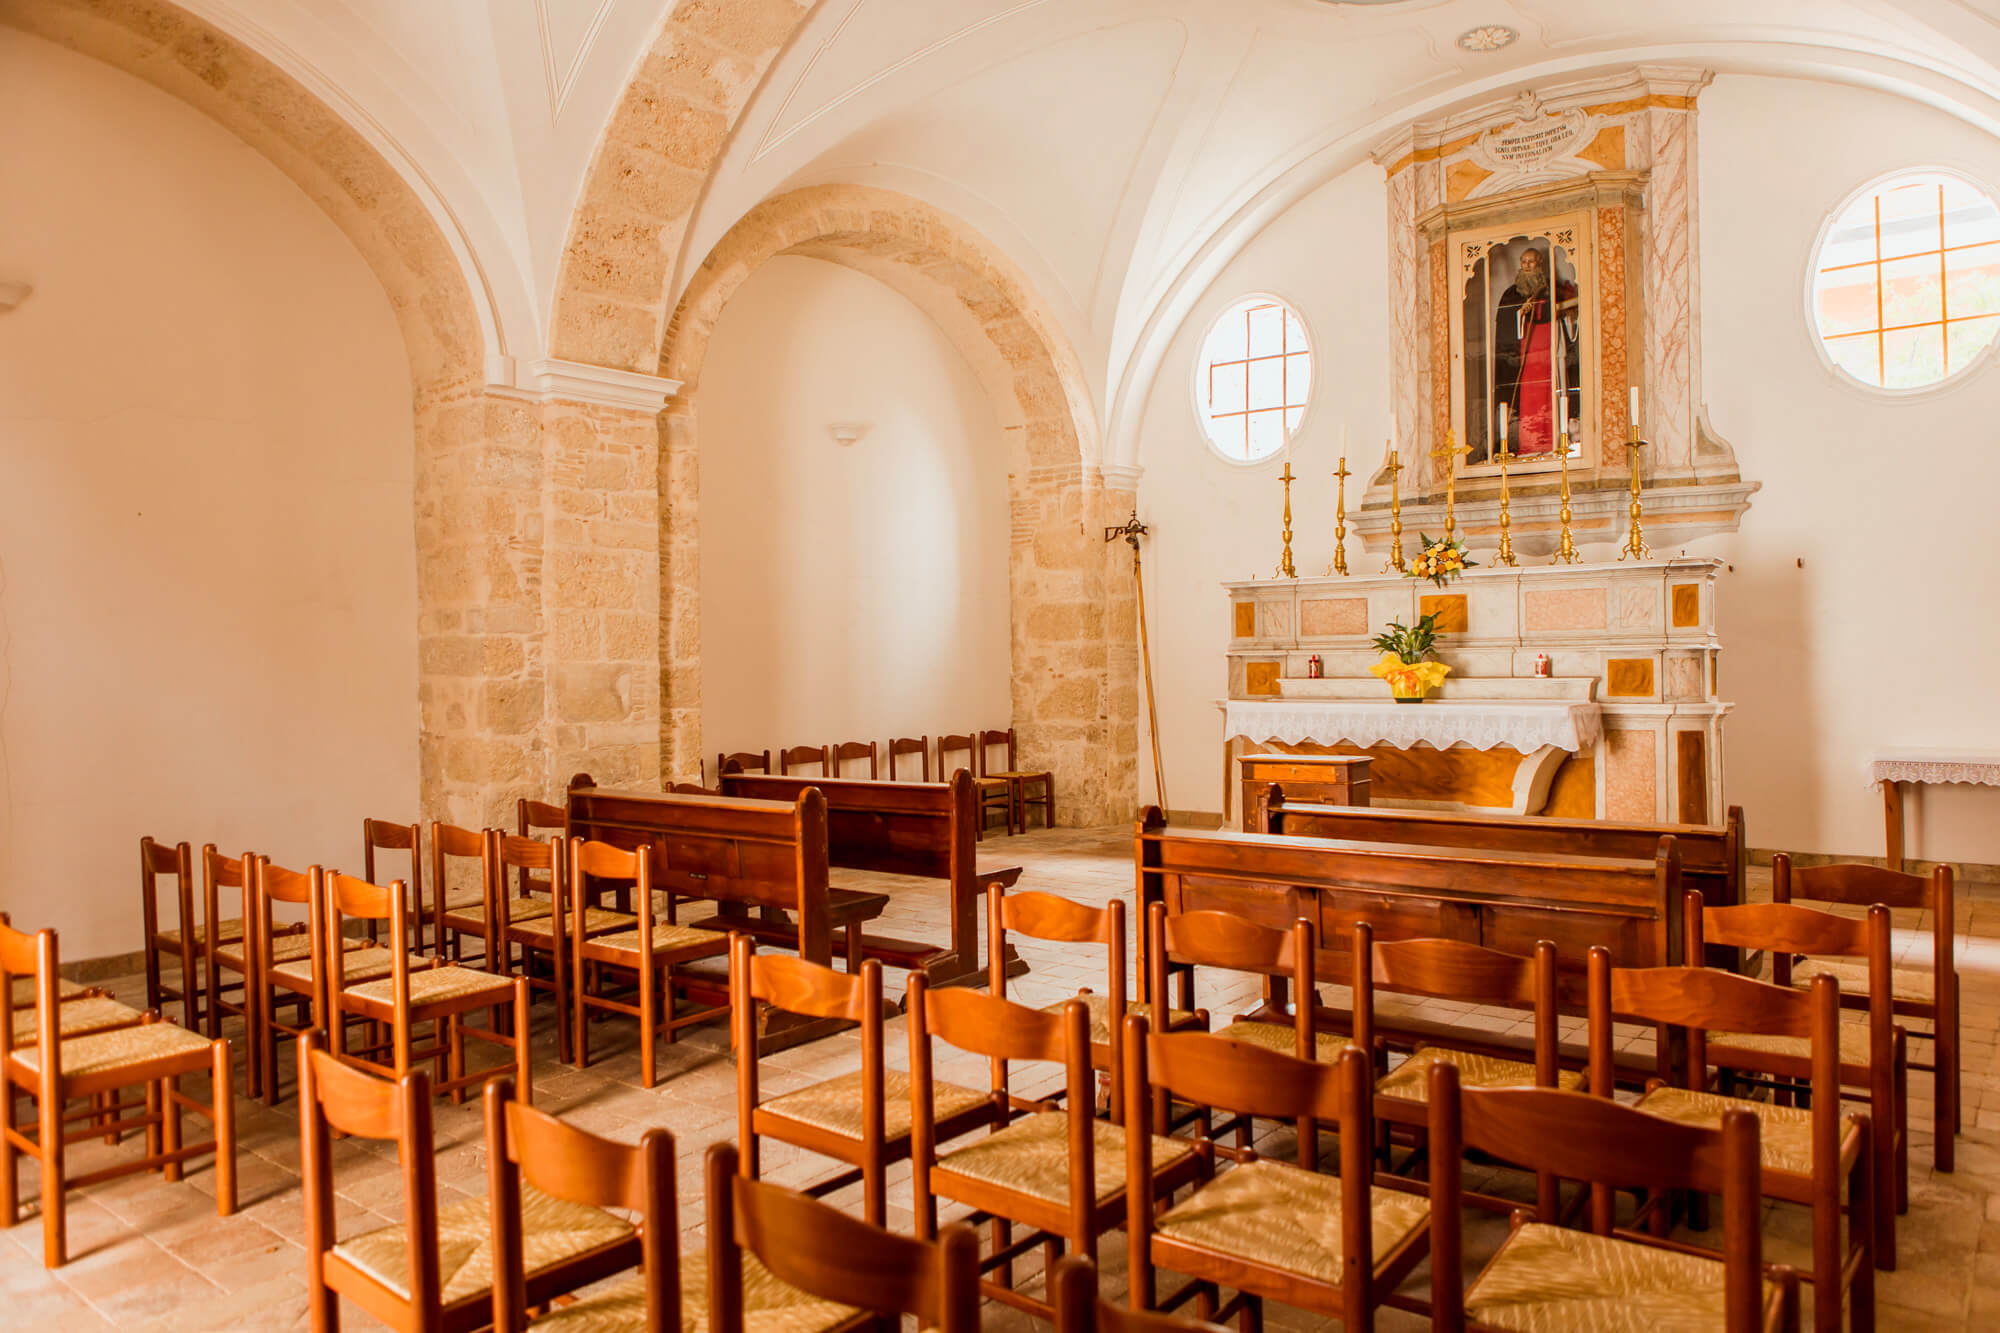 Chiese_Scanno-5